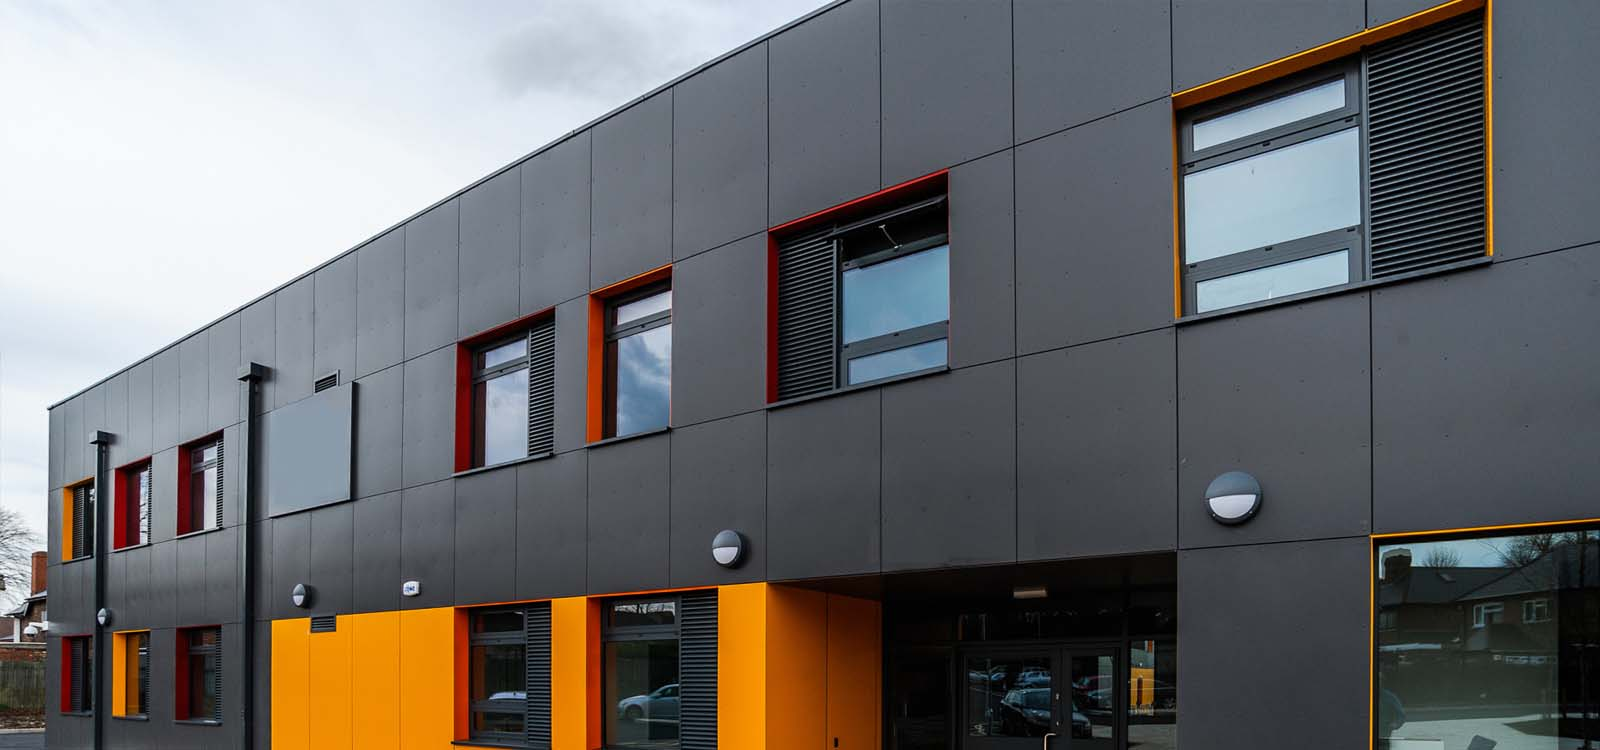 Choosing the Right Aluminium Composite Panel for the Exterior Facade